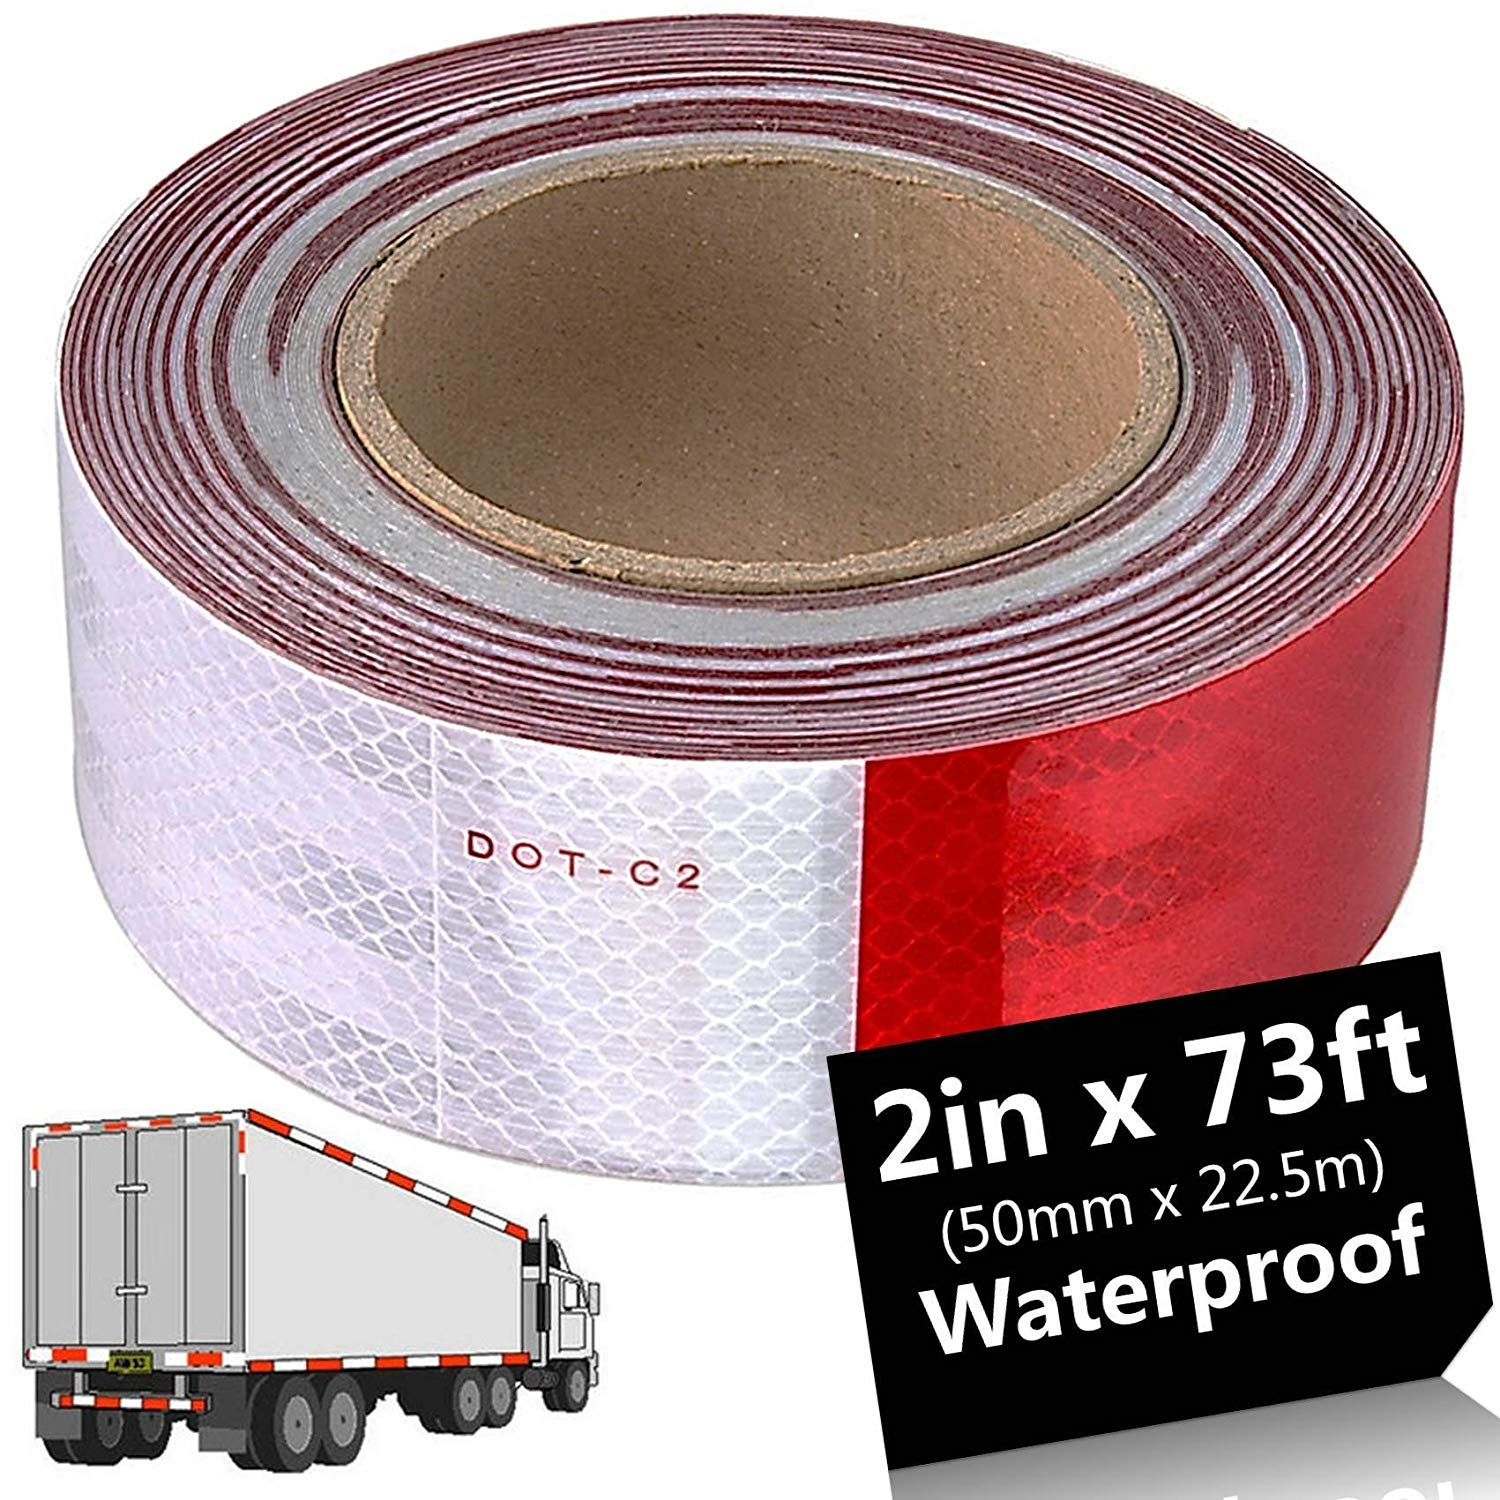 LANIAKEA Reflective Tape for Trailers, DOT-C2 Retroreflective Sheeting Pattern: Alternating White and Red Color Segments, 50mm x 73ft, Waterproof Adhesive, for Truck, Garage Door, Parking Lot, Driveway SilkRoad Direct